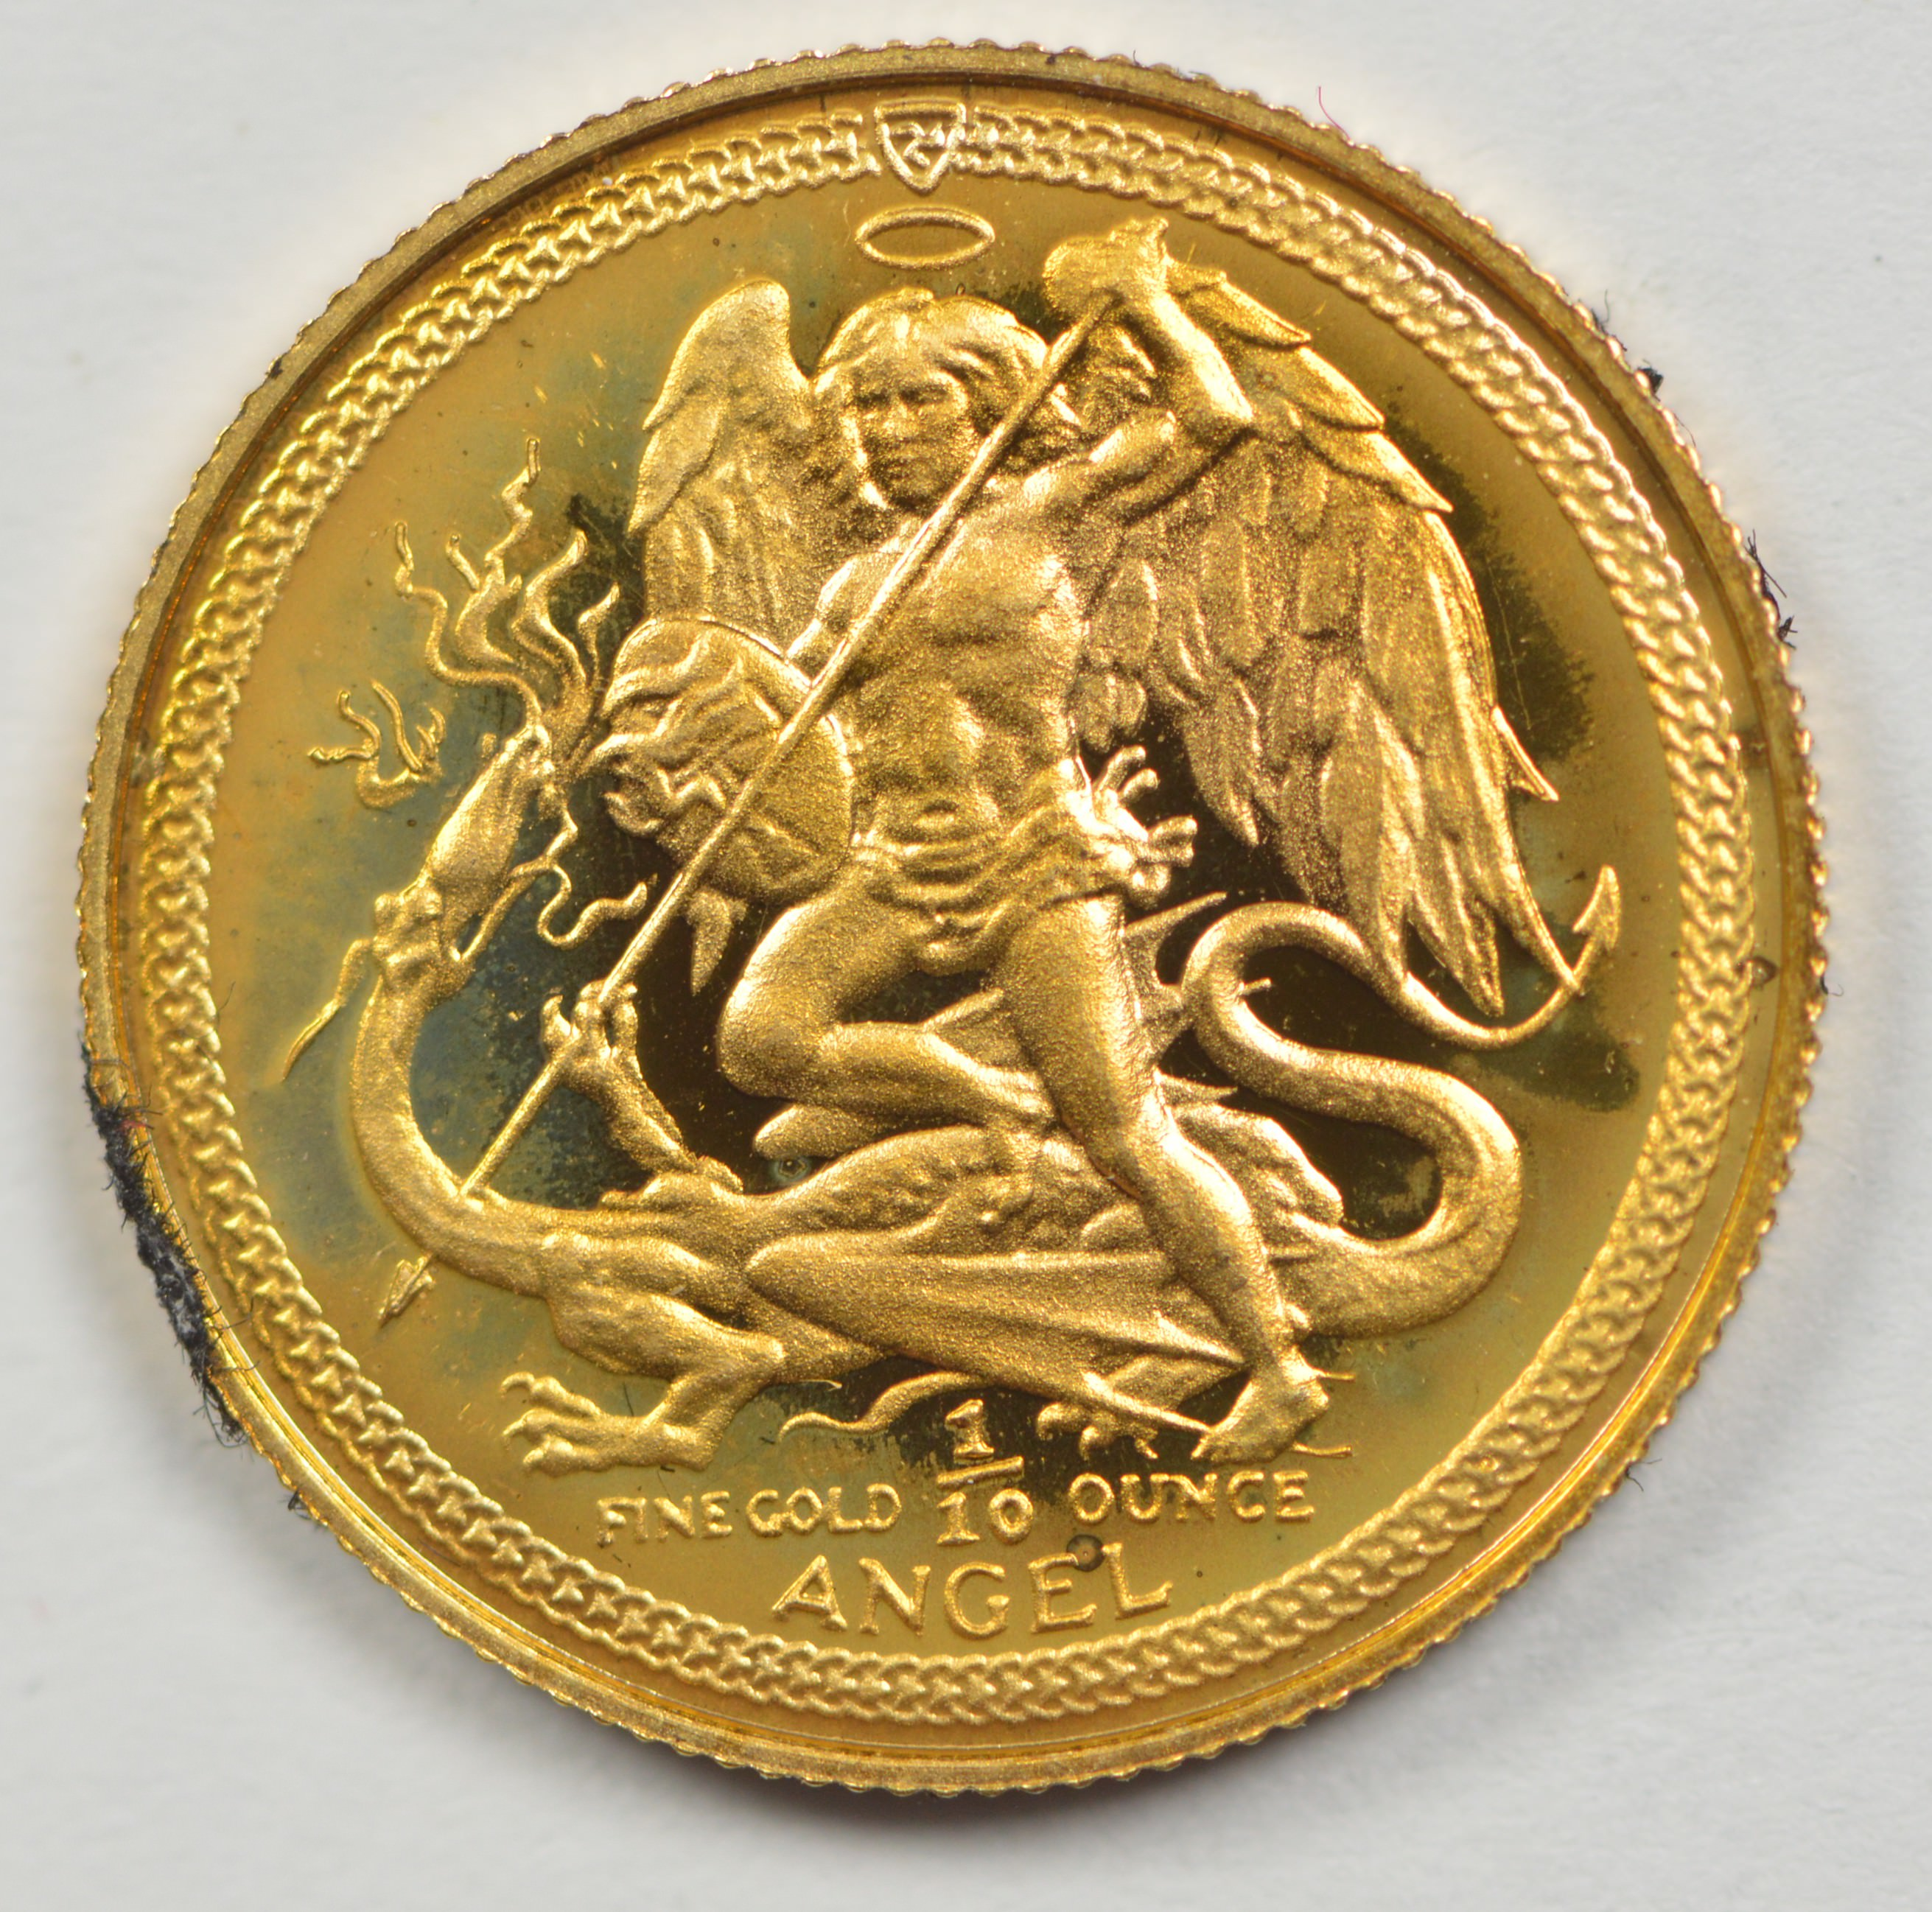 1985 Isle Of Man Angel 999 Gold Coin Agw 1 10 Oz